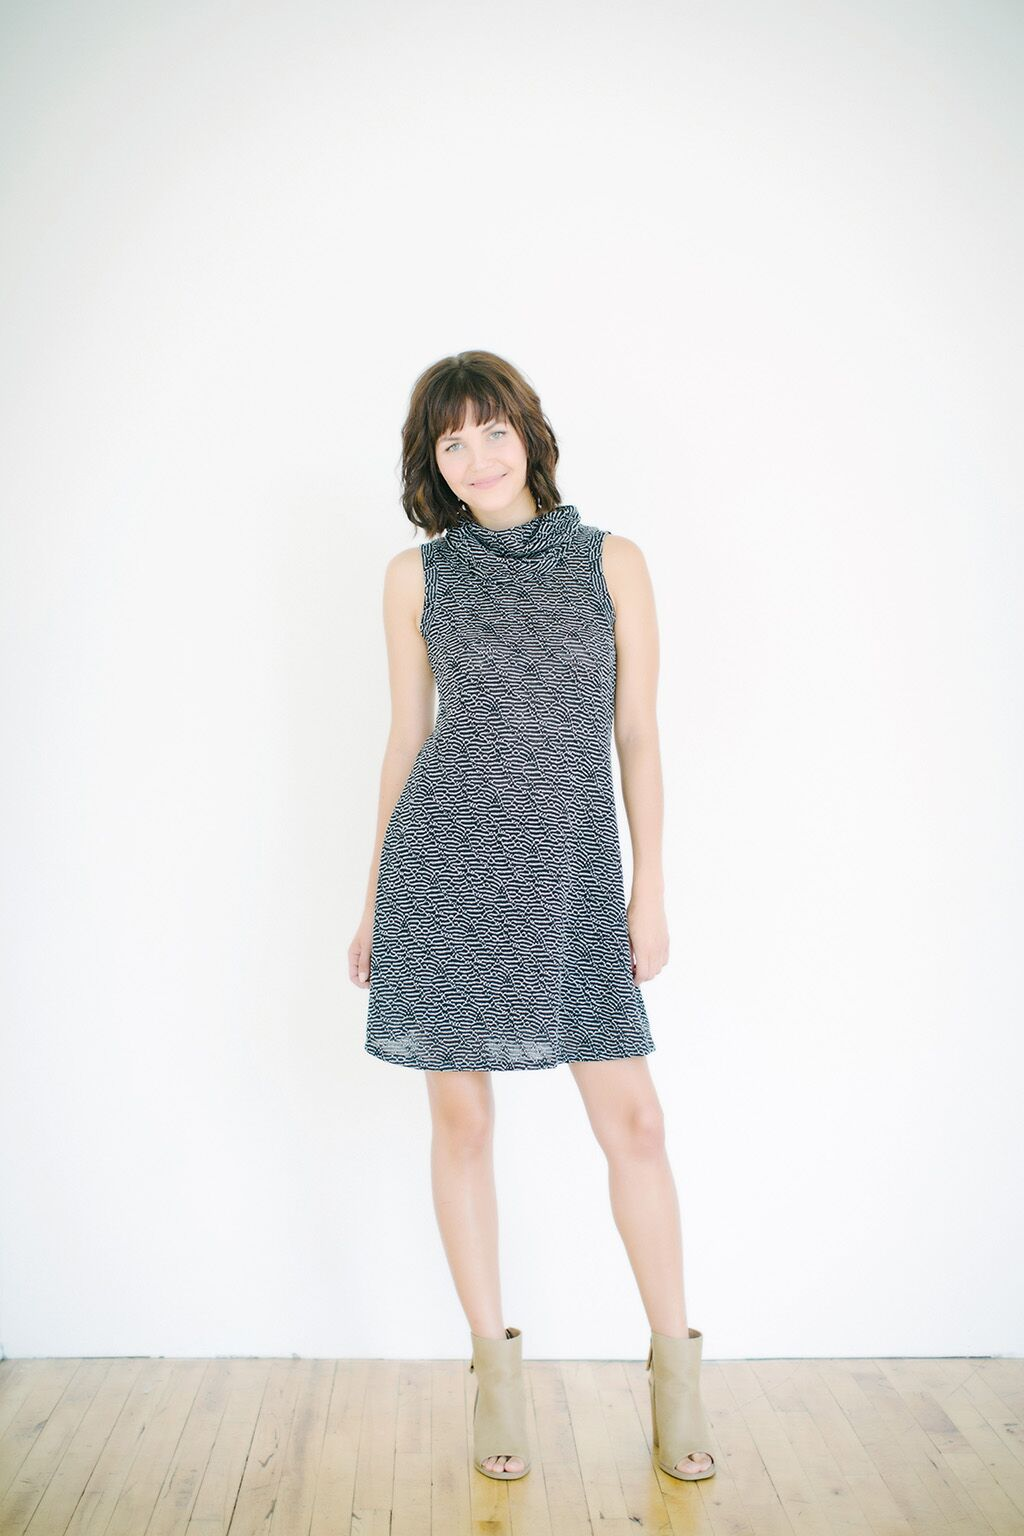 KOKOON Jojo Cowl Neck Dress in Black and White Rivulet Knit